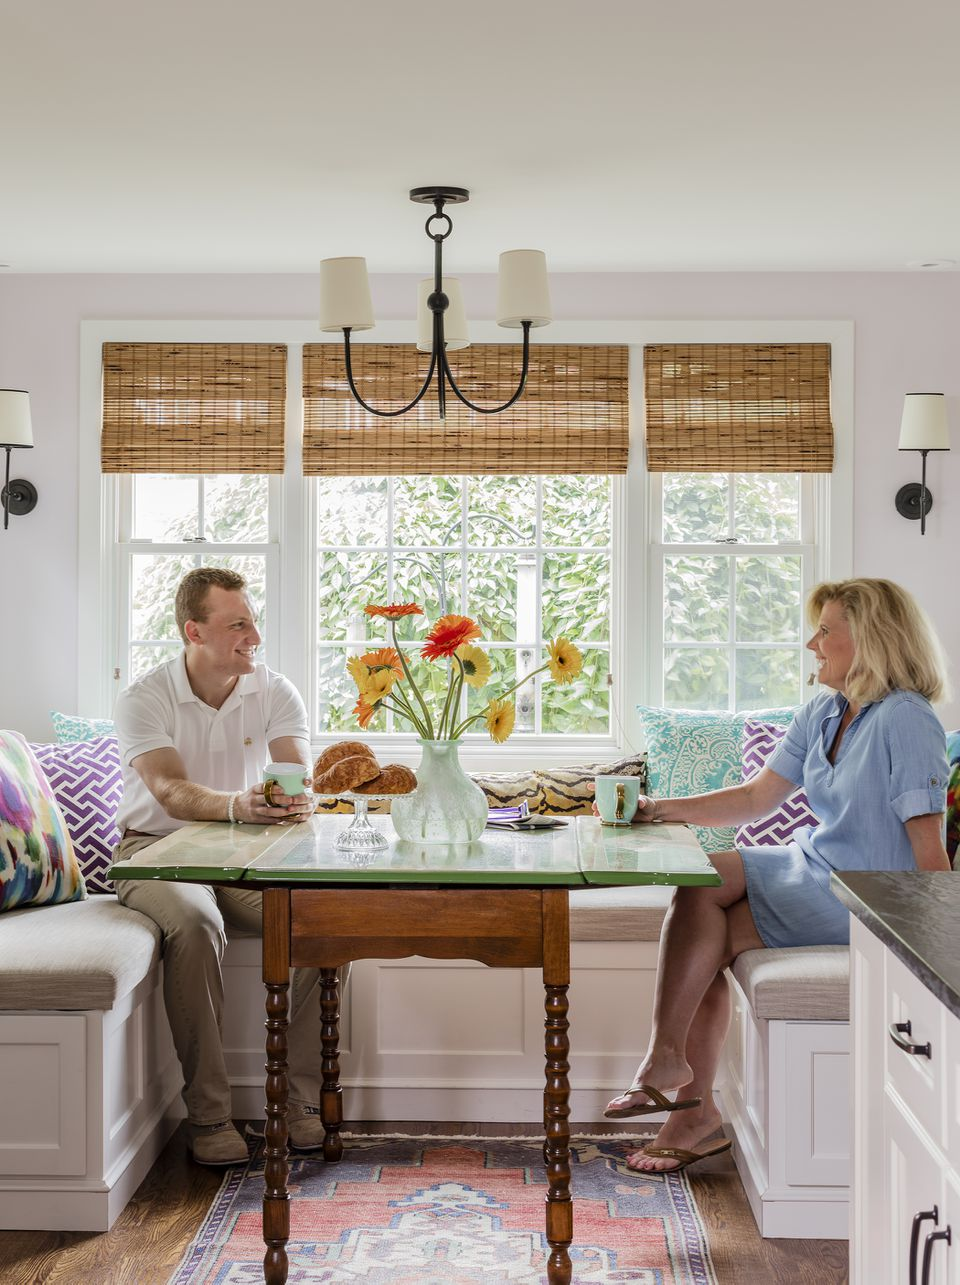 Linda Shpilner and son Zachary sit at the breakfast-area table, inherited from Linda's aunt. Romo fabric covers the three-sided built-in banquette.